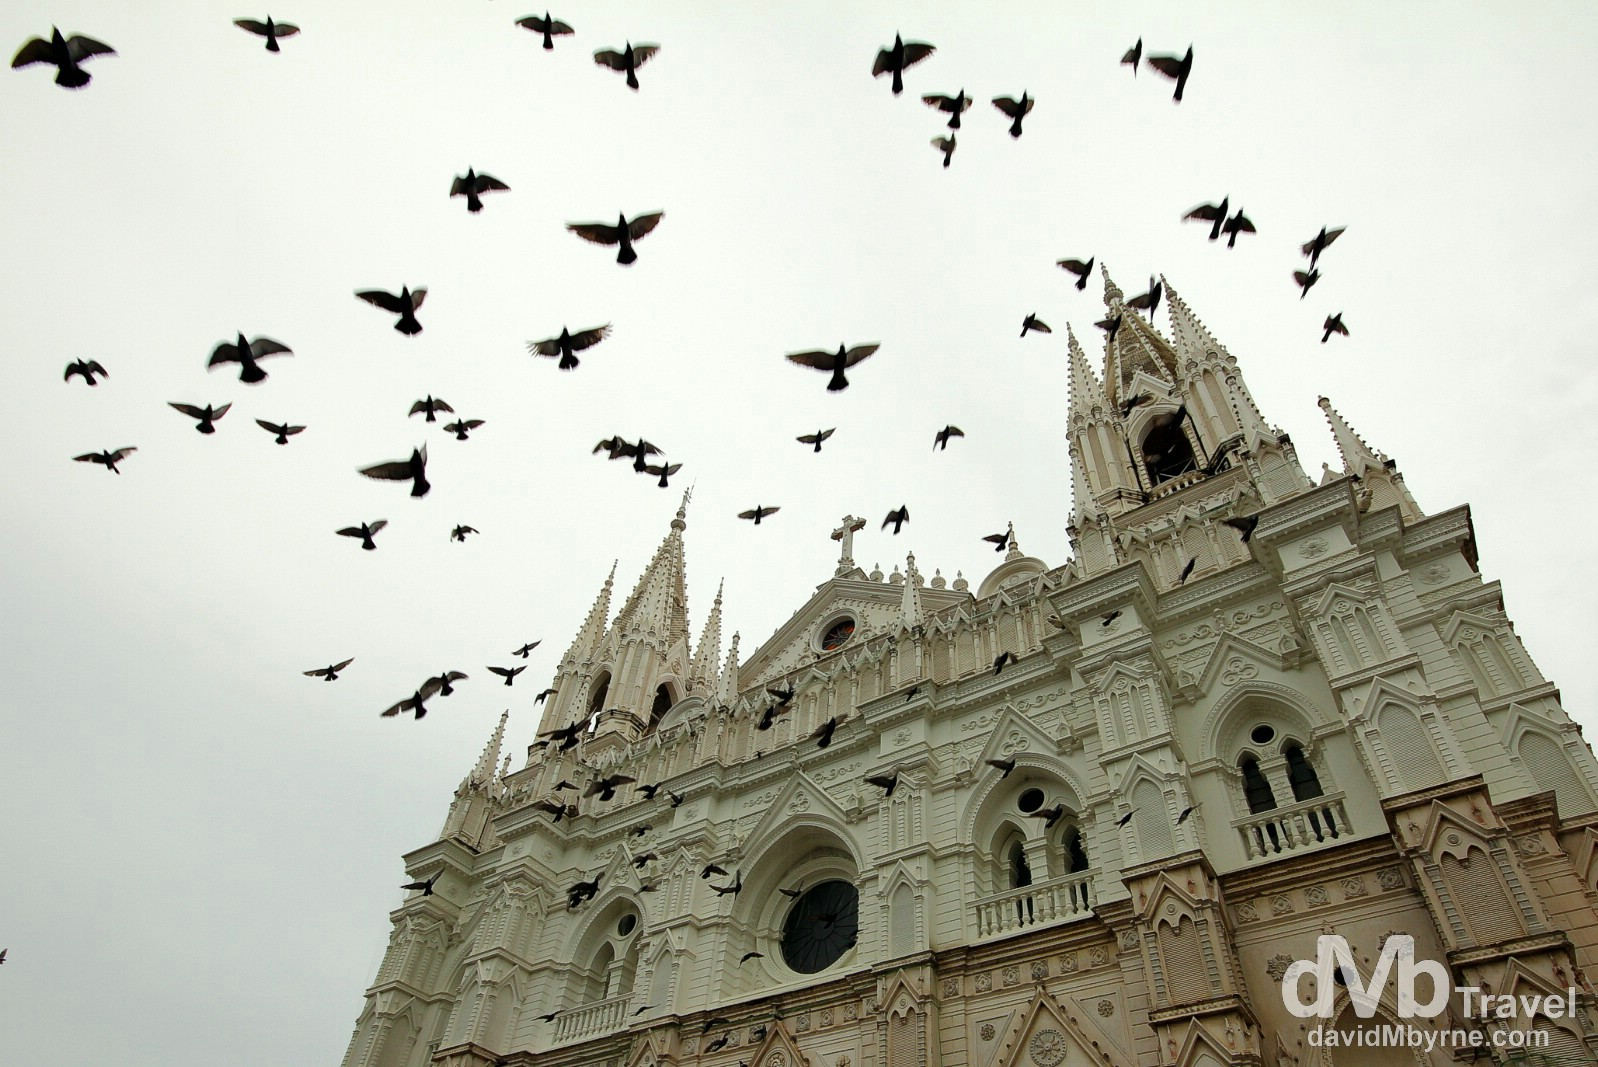 Pigeons flying in in front of Santa Ana's neo-Gothic Cathedral, Santa Ana, Western El Salvador. May 27th 2013.